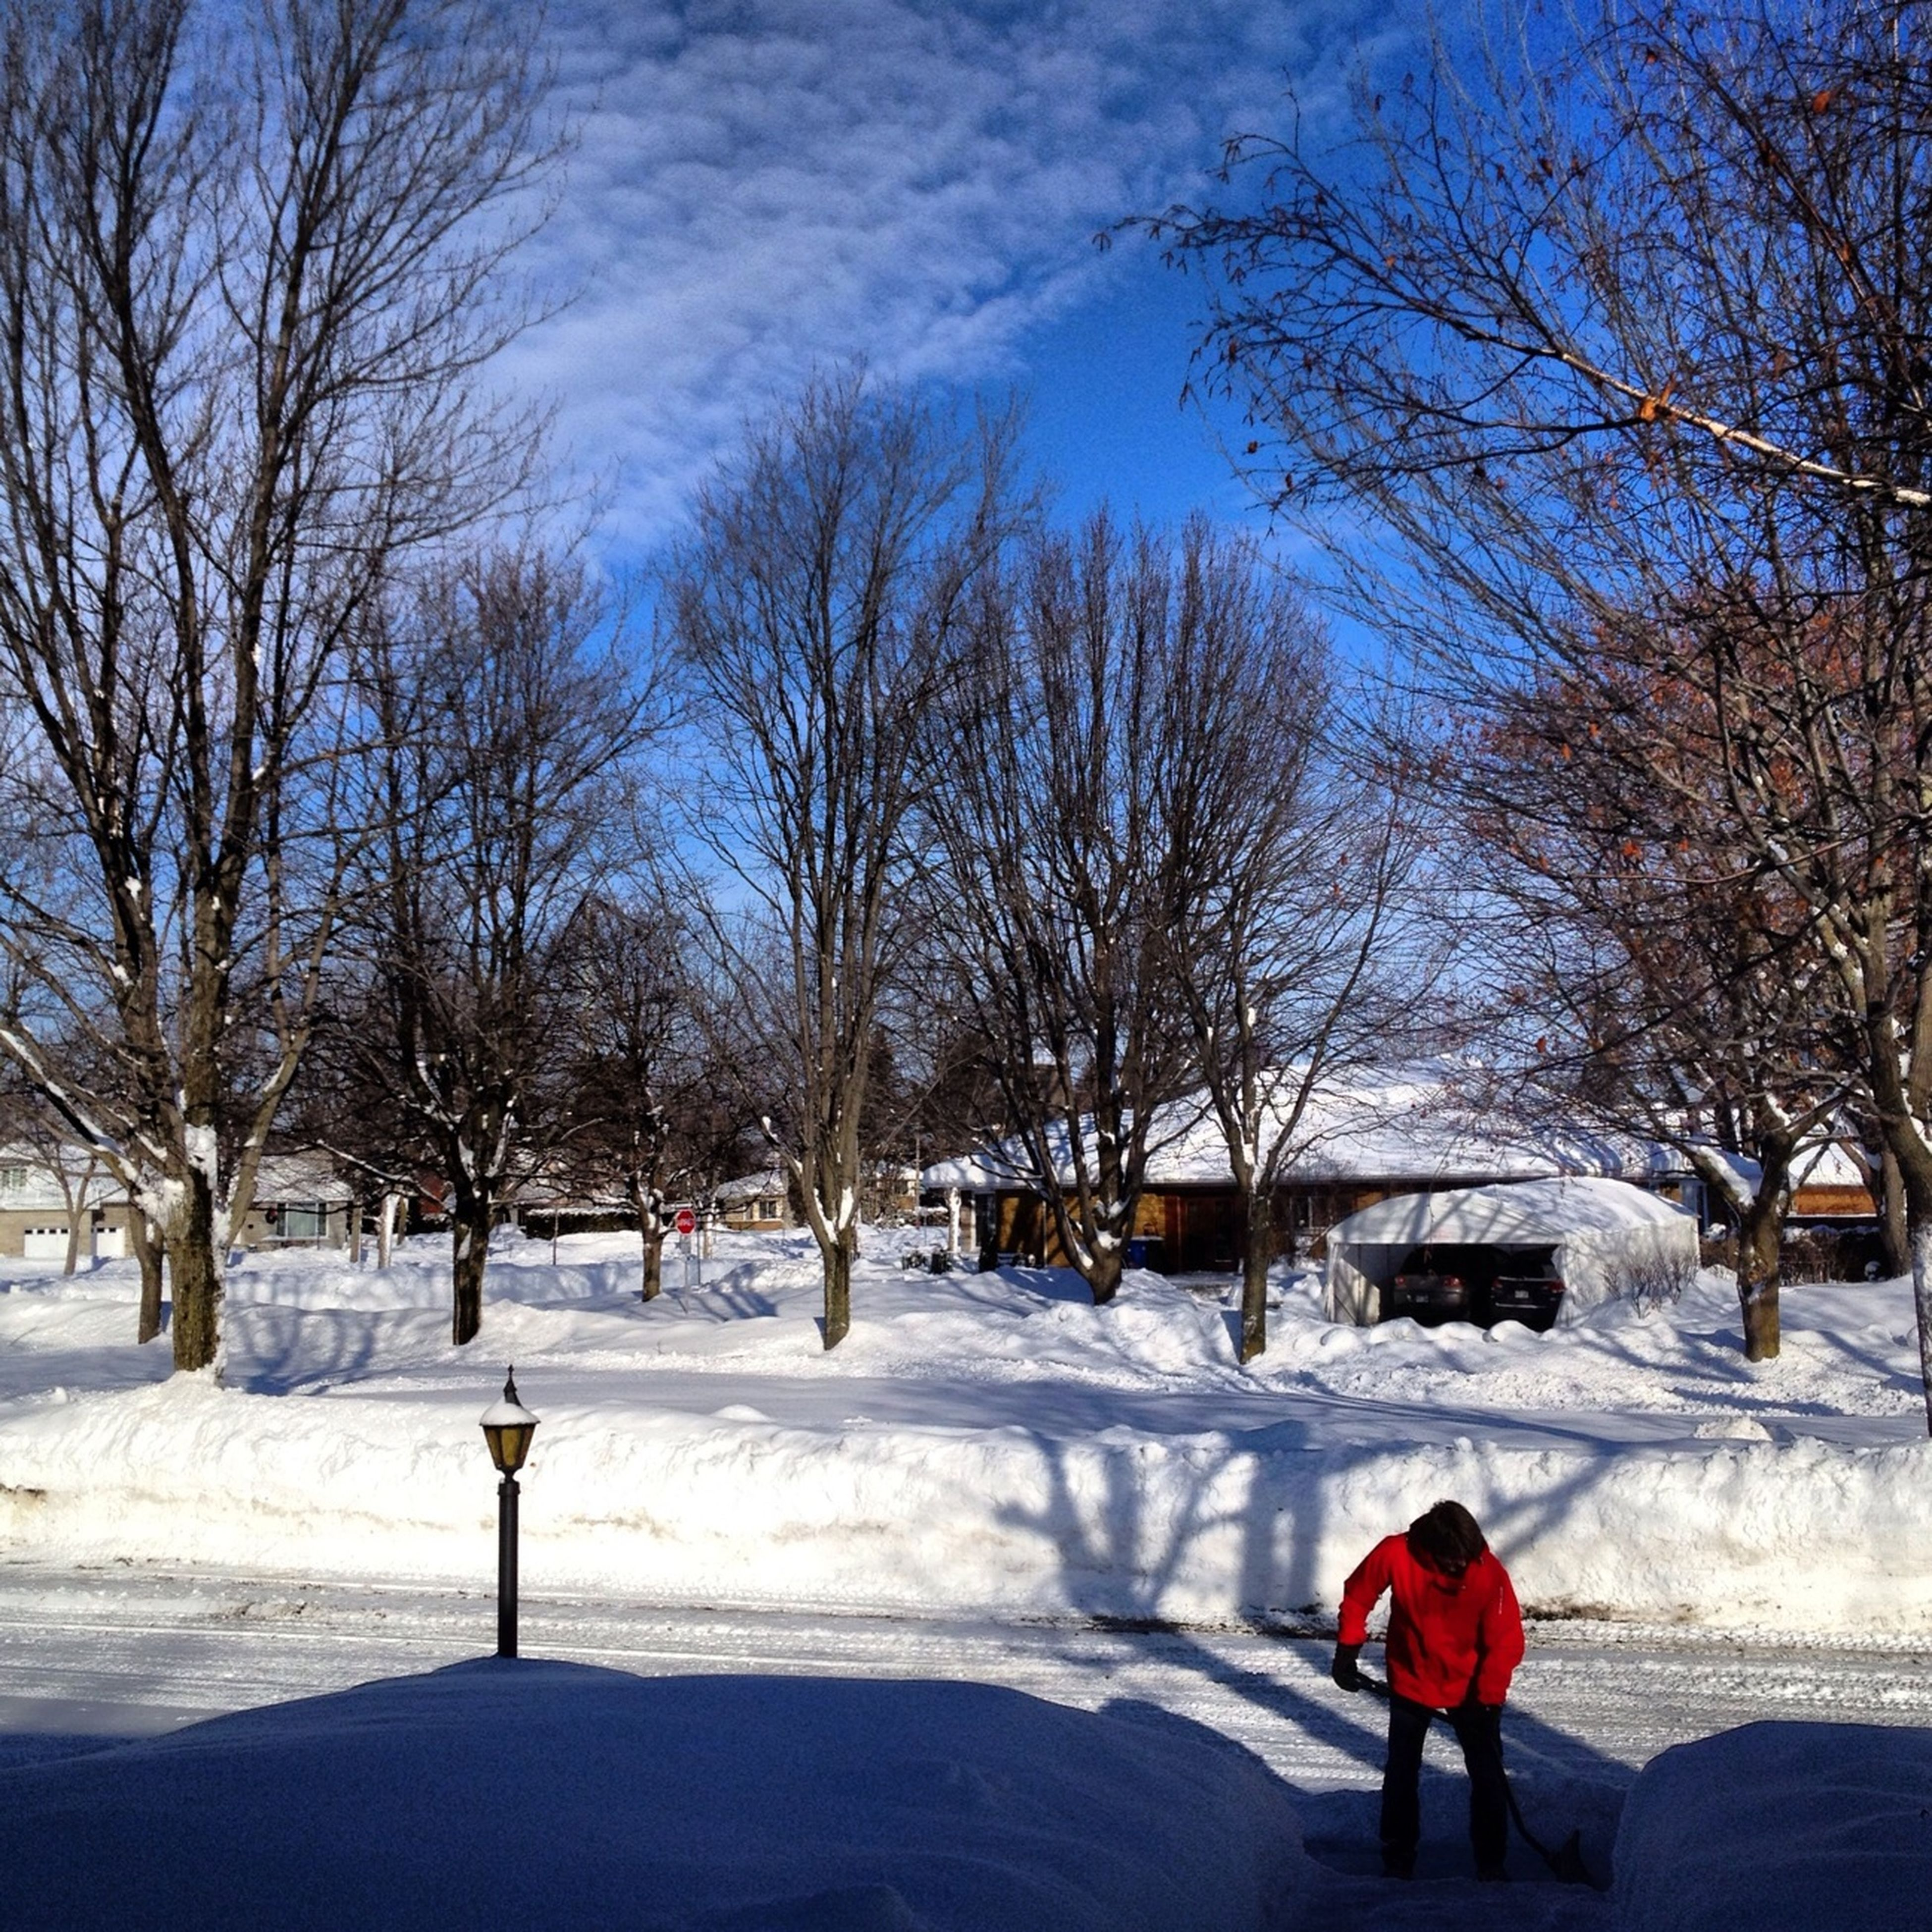 winter, bare tree, snow, cold temperature, tree, season, weather, lifestyles, leisure activity, walking, rear view, men, sky, full length, street, nature, road, branch